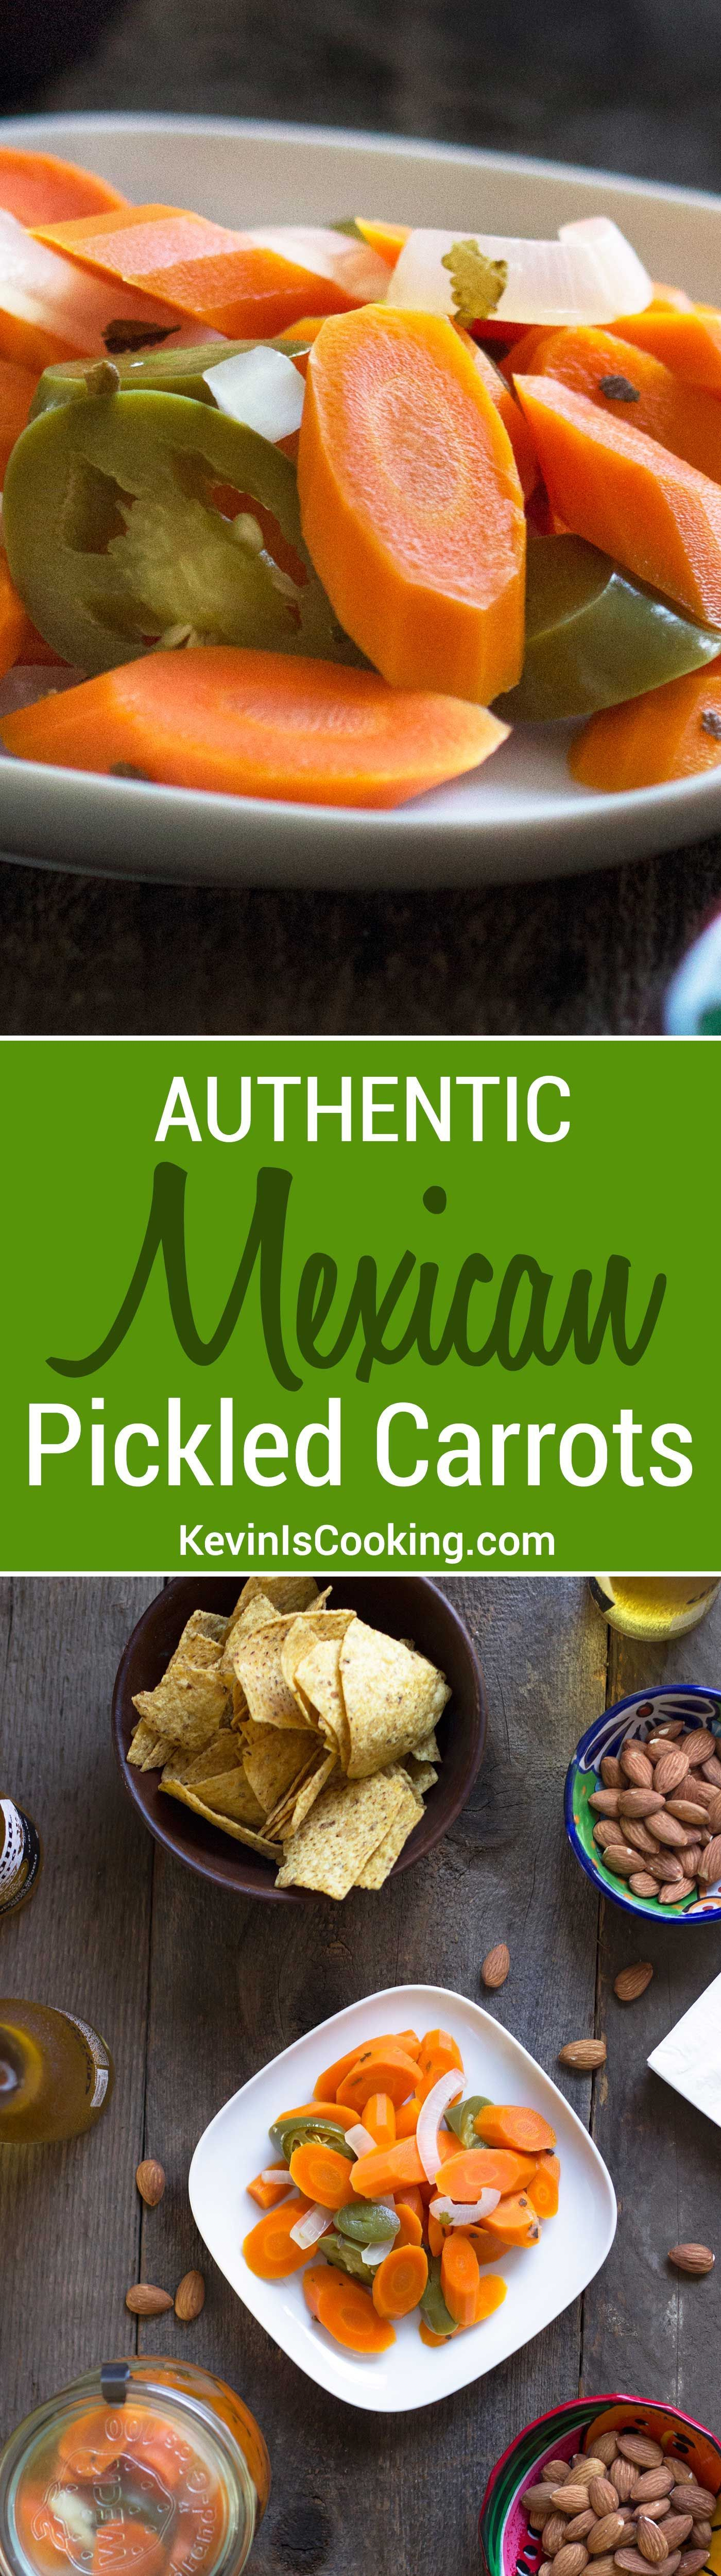 spicy pickled carrots are just like the ones in Mexican restaurants! Can't get enough of then, so easy!